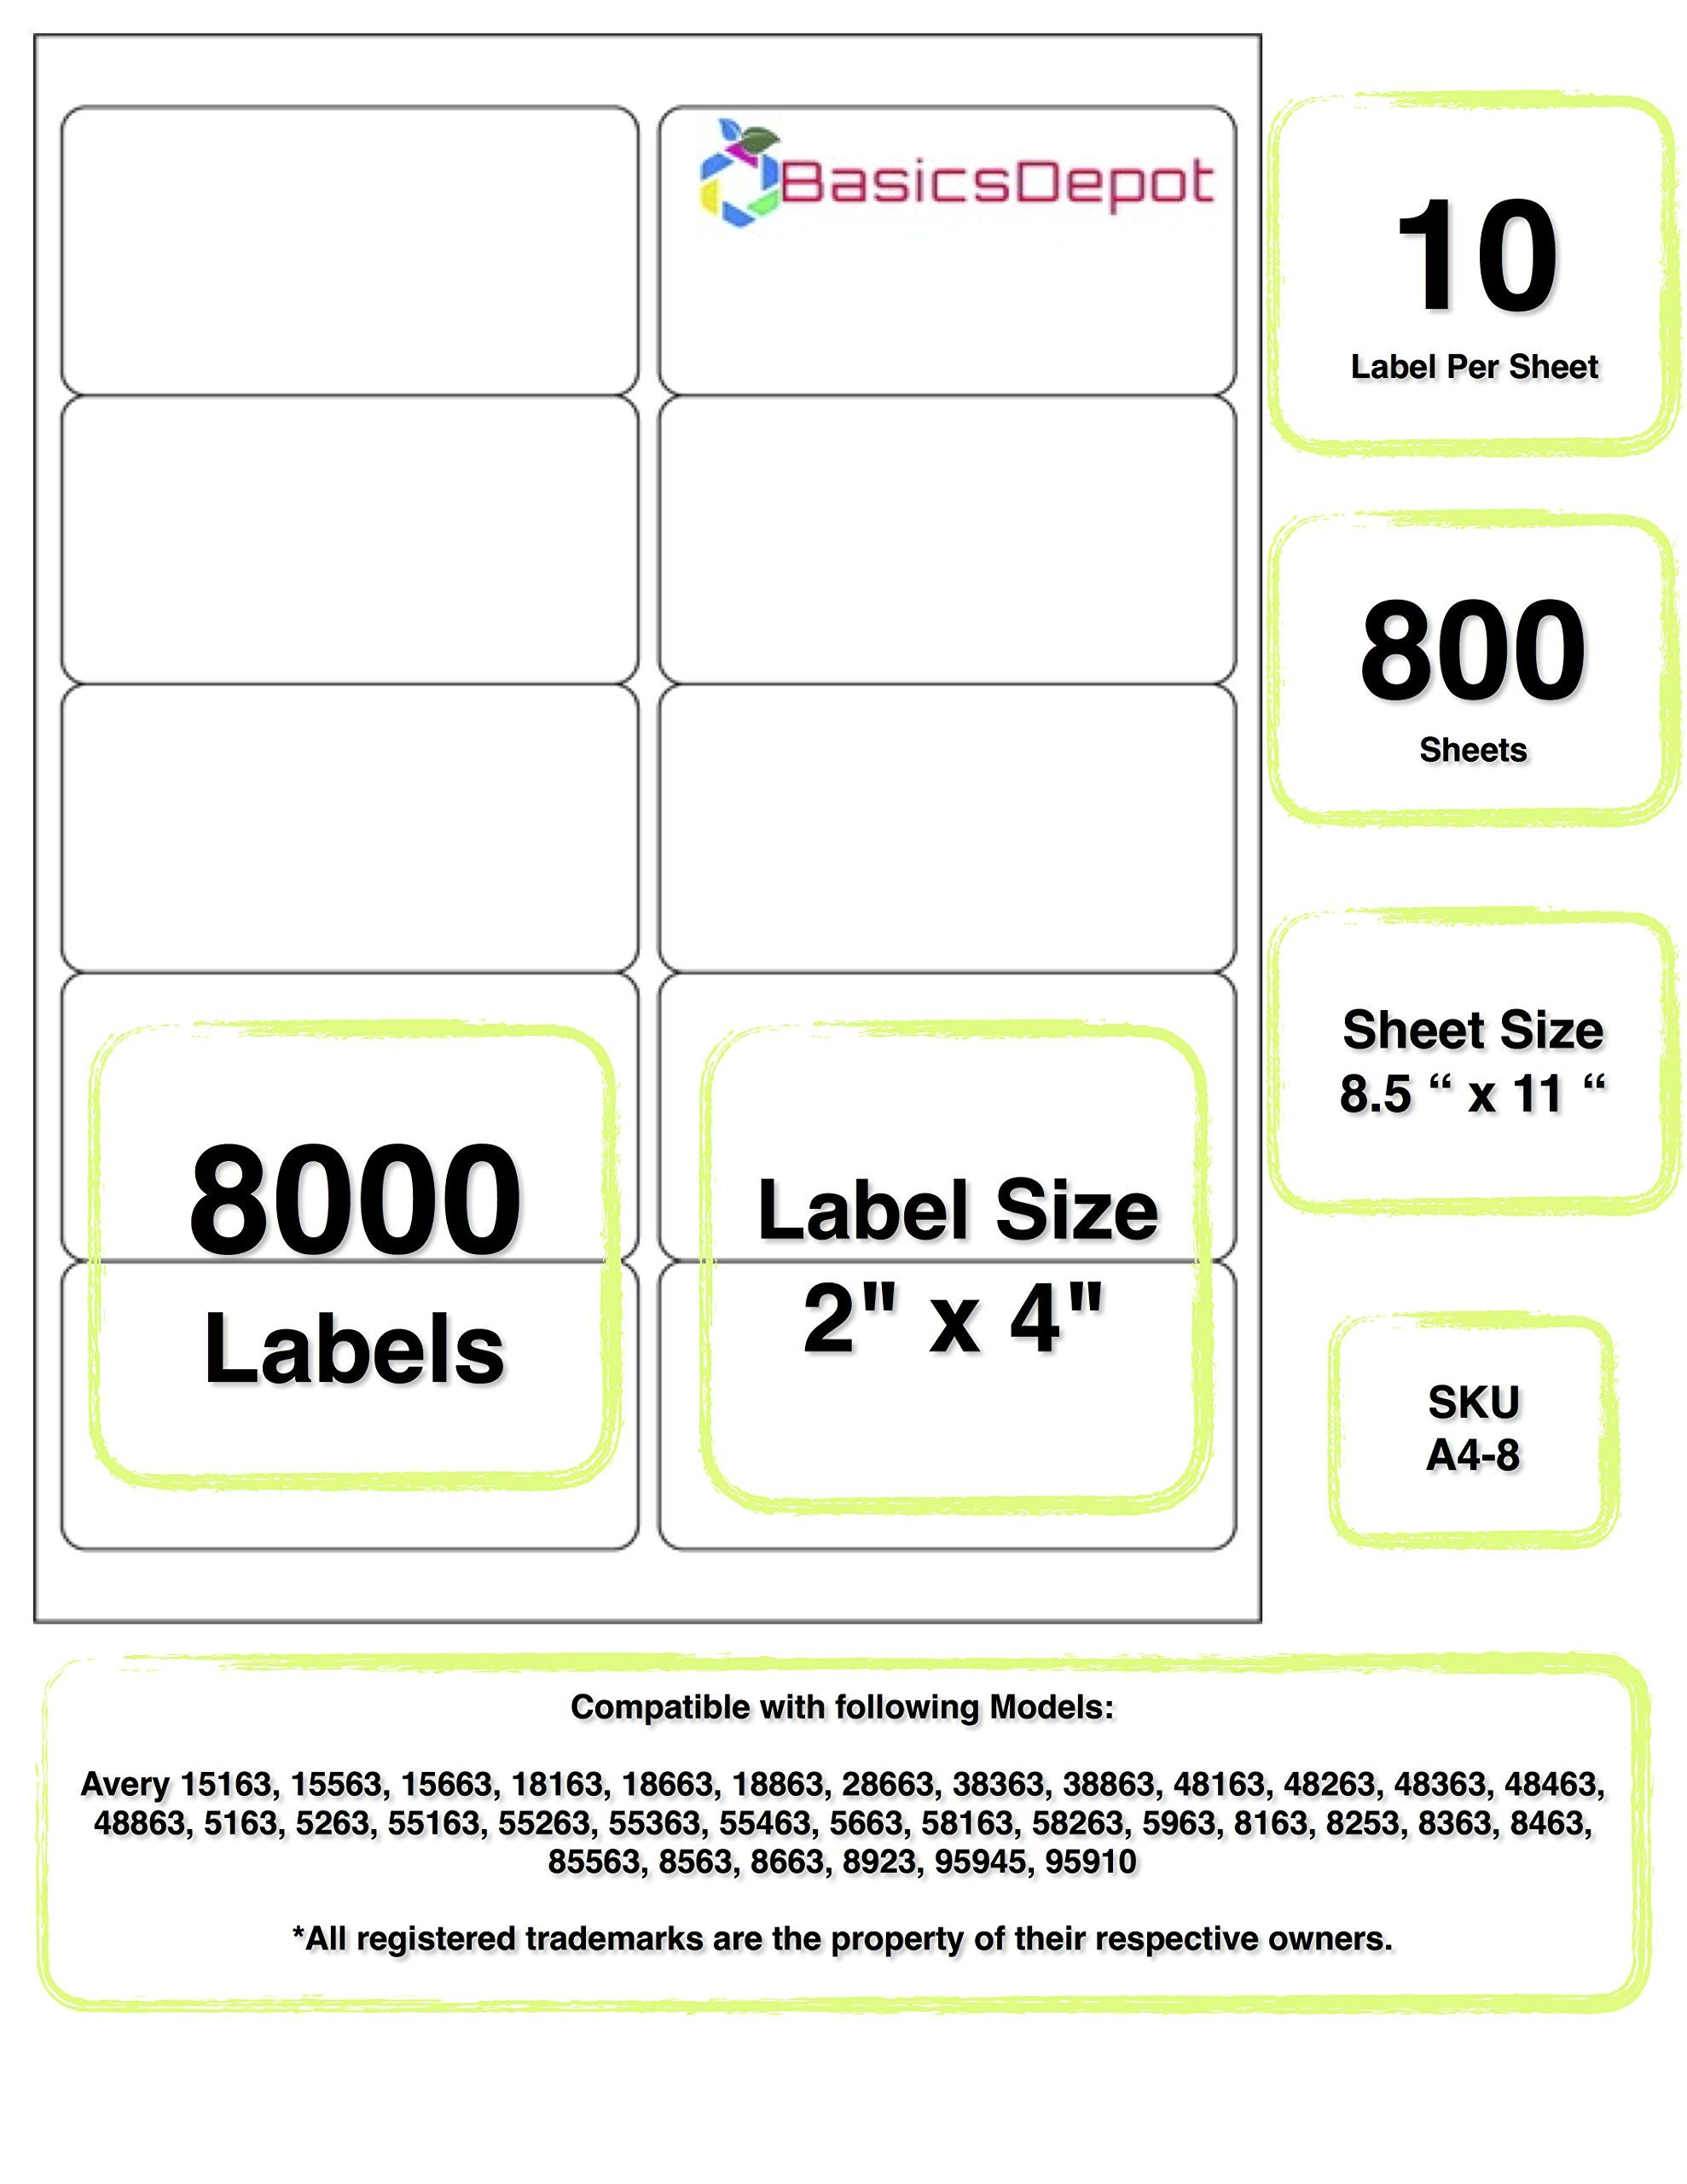 Avery 5163 Compatible 4 X 2 Inch Label Same Size As Avery 5163 10 Label Per Sheet 800 Sheet Label Templates Printable Label Templates Avery Label Templates